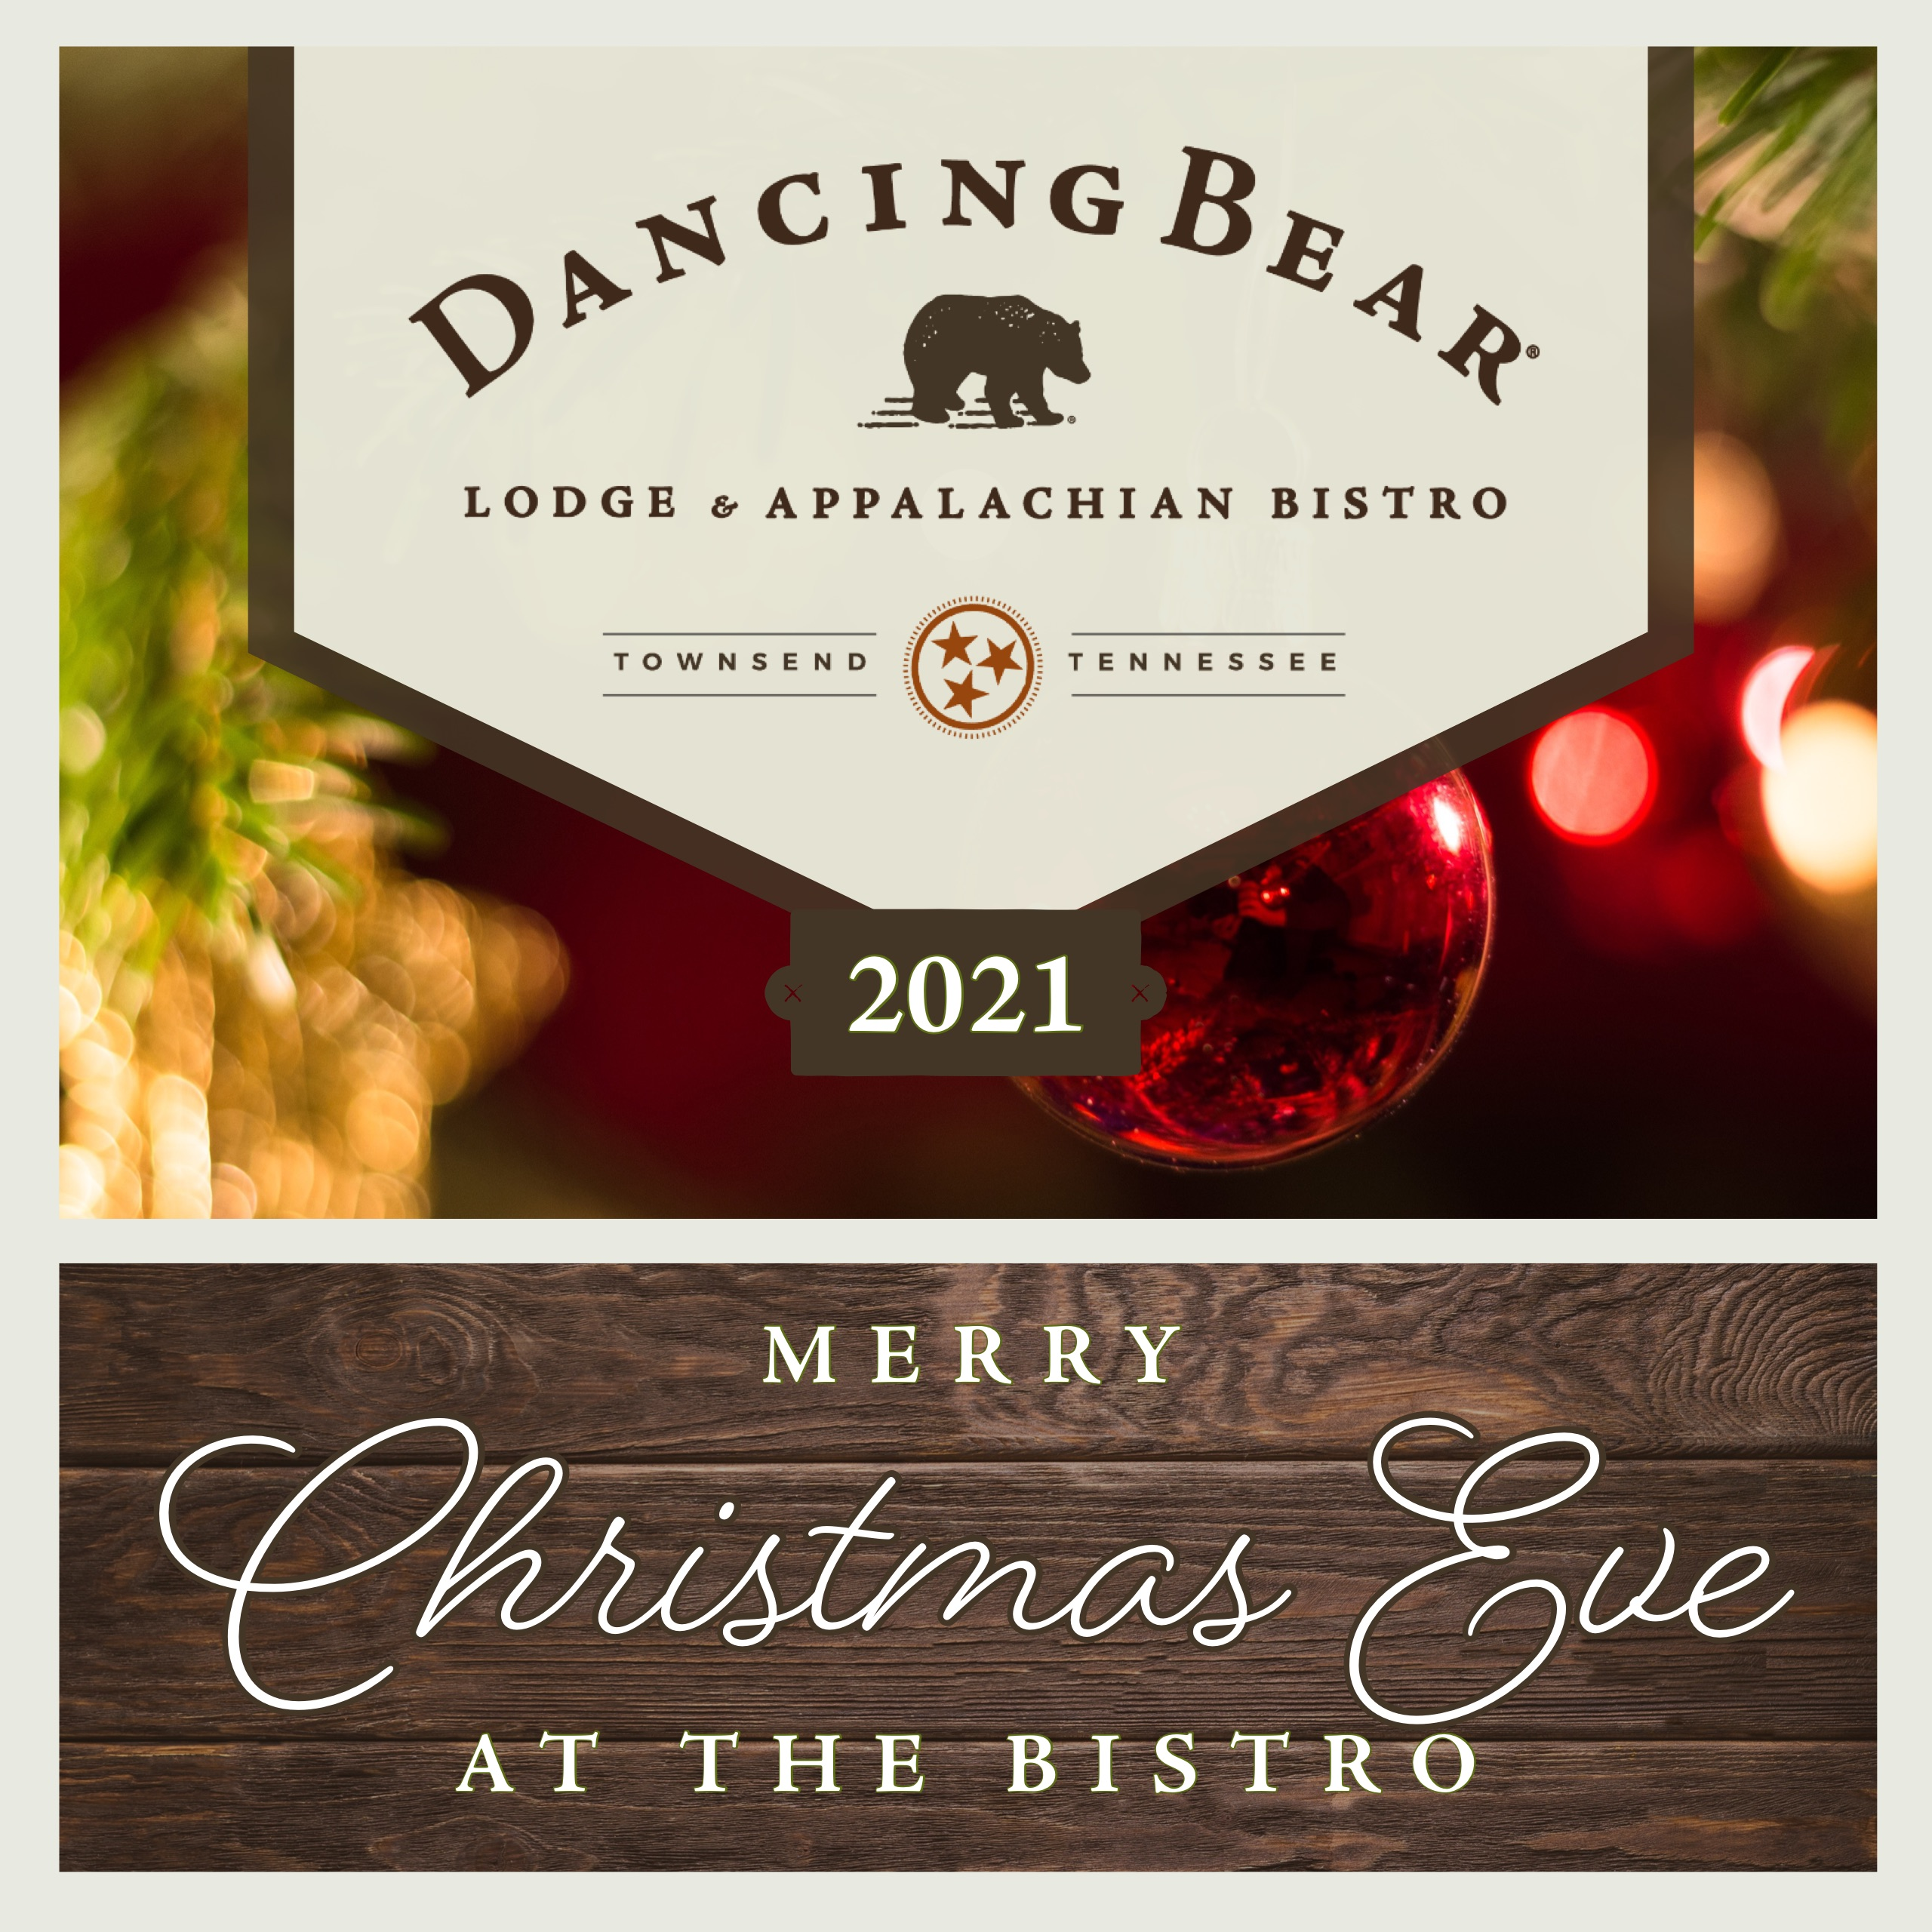 Christmas Eve at The Bistro